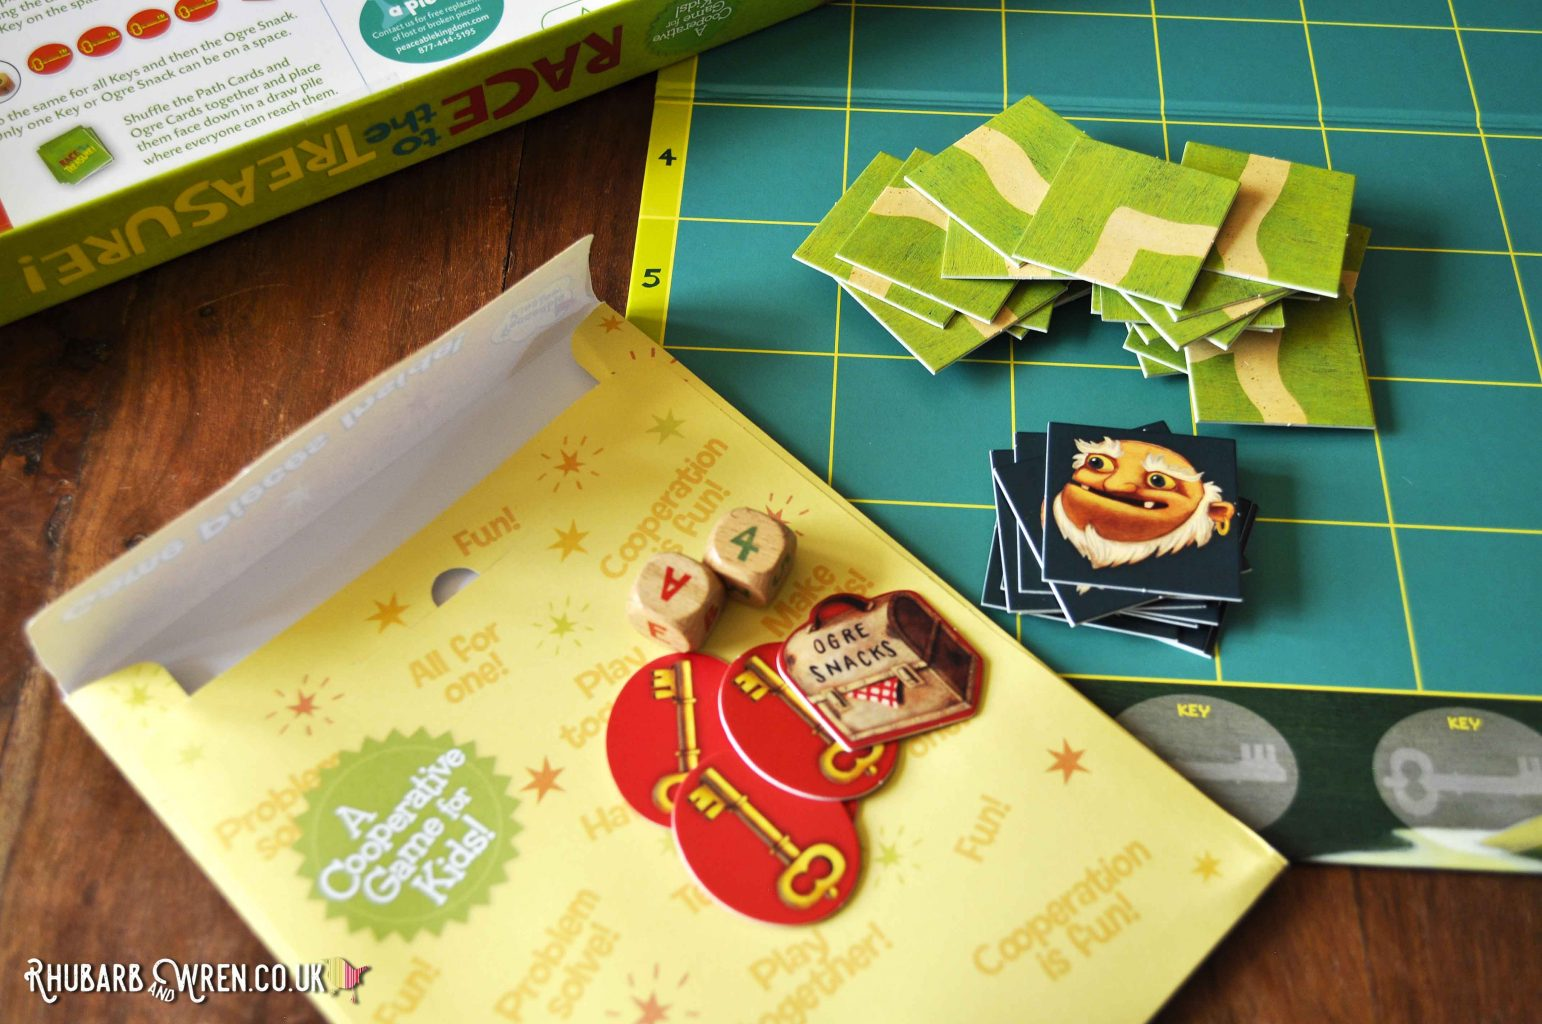 Card pieces from a Peaceable Kingdom board game